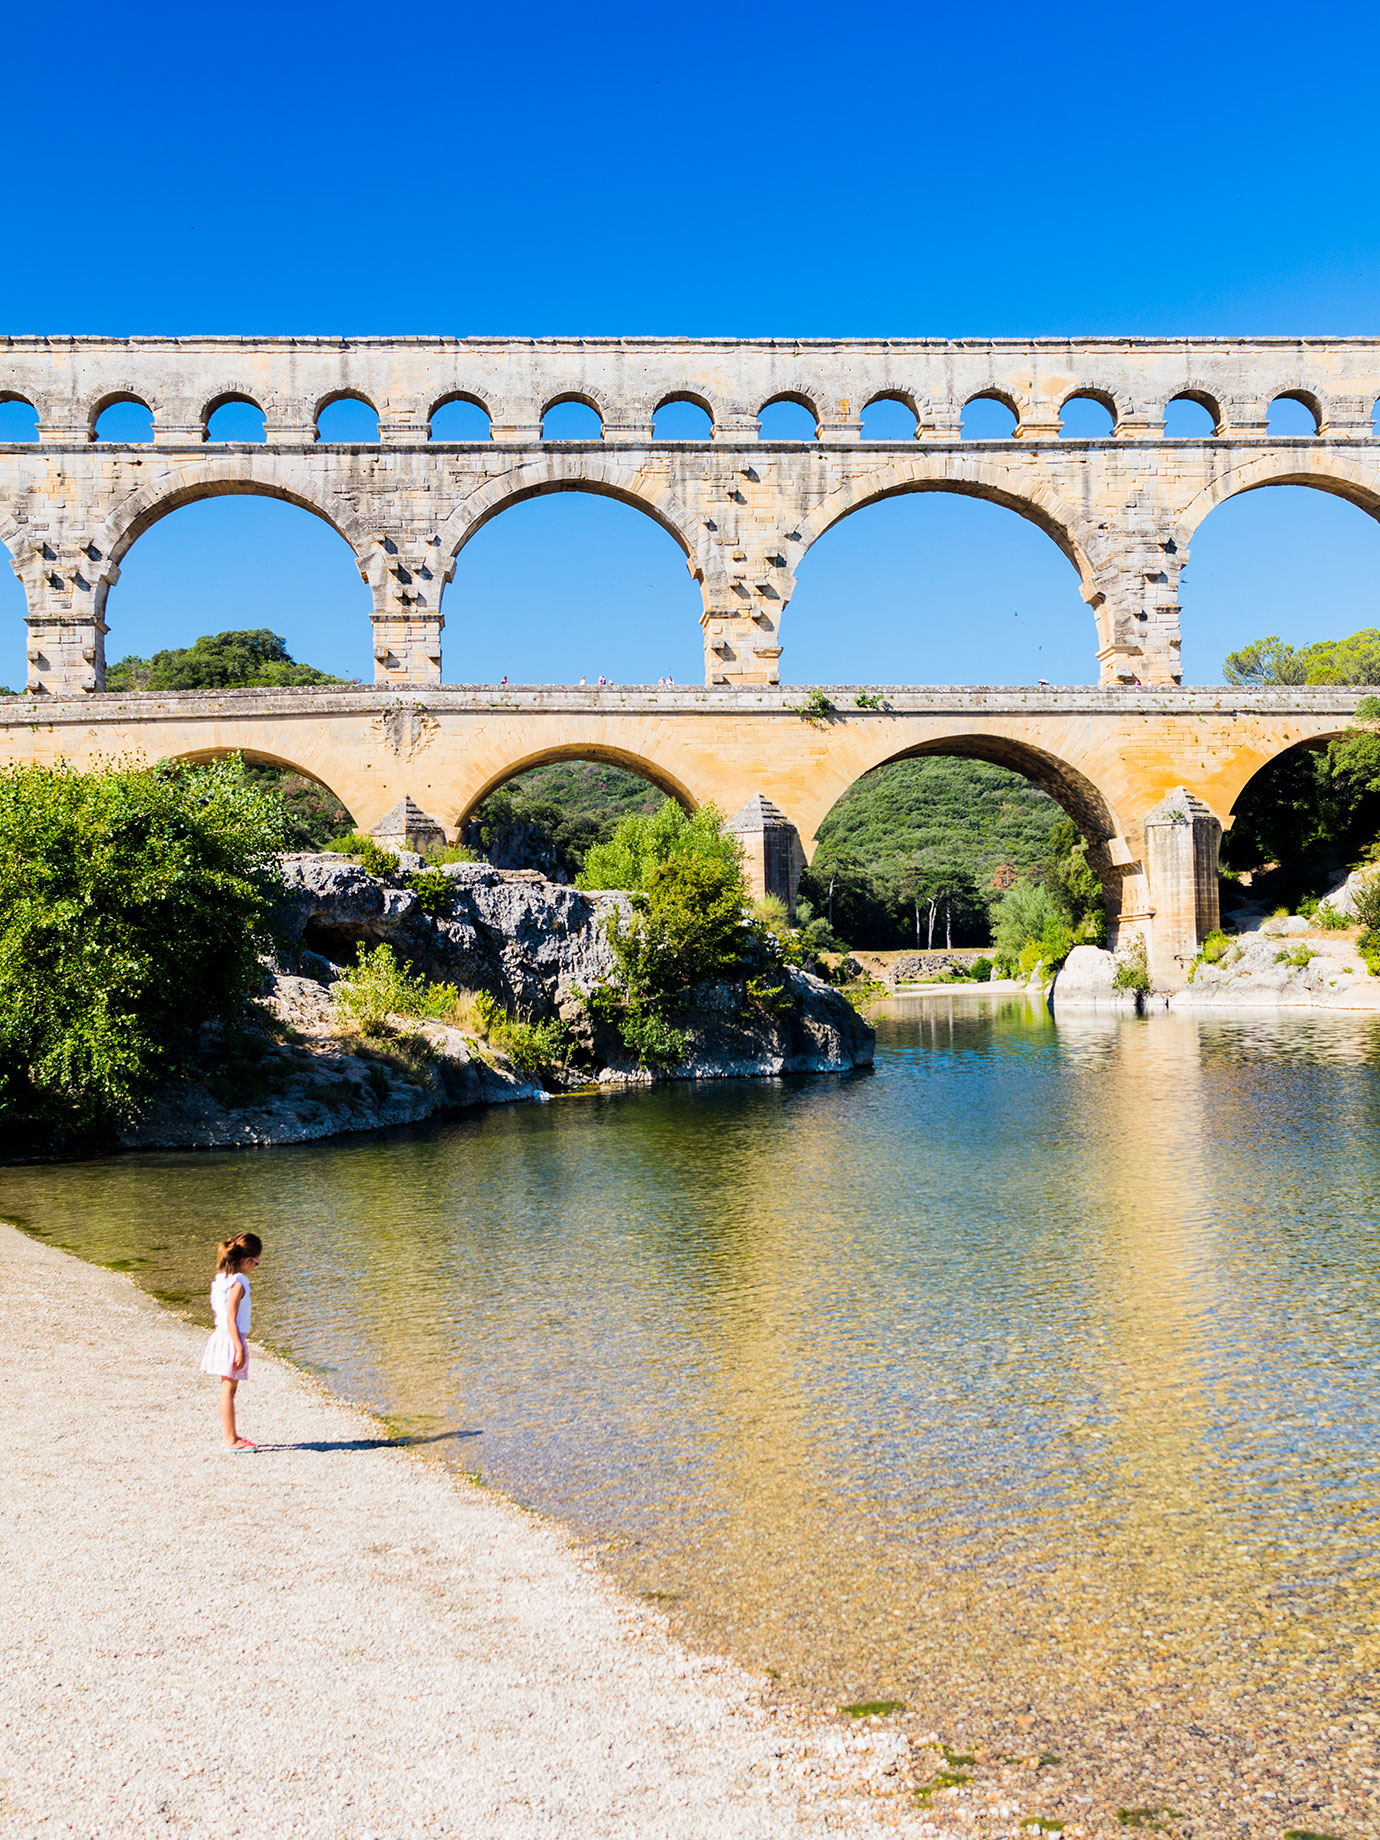 A child standing on the shore of a river with an aqueduct in the background.